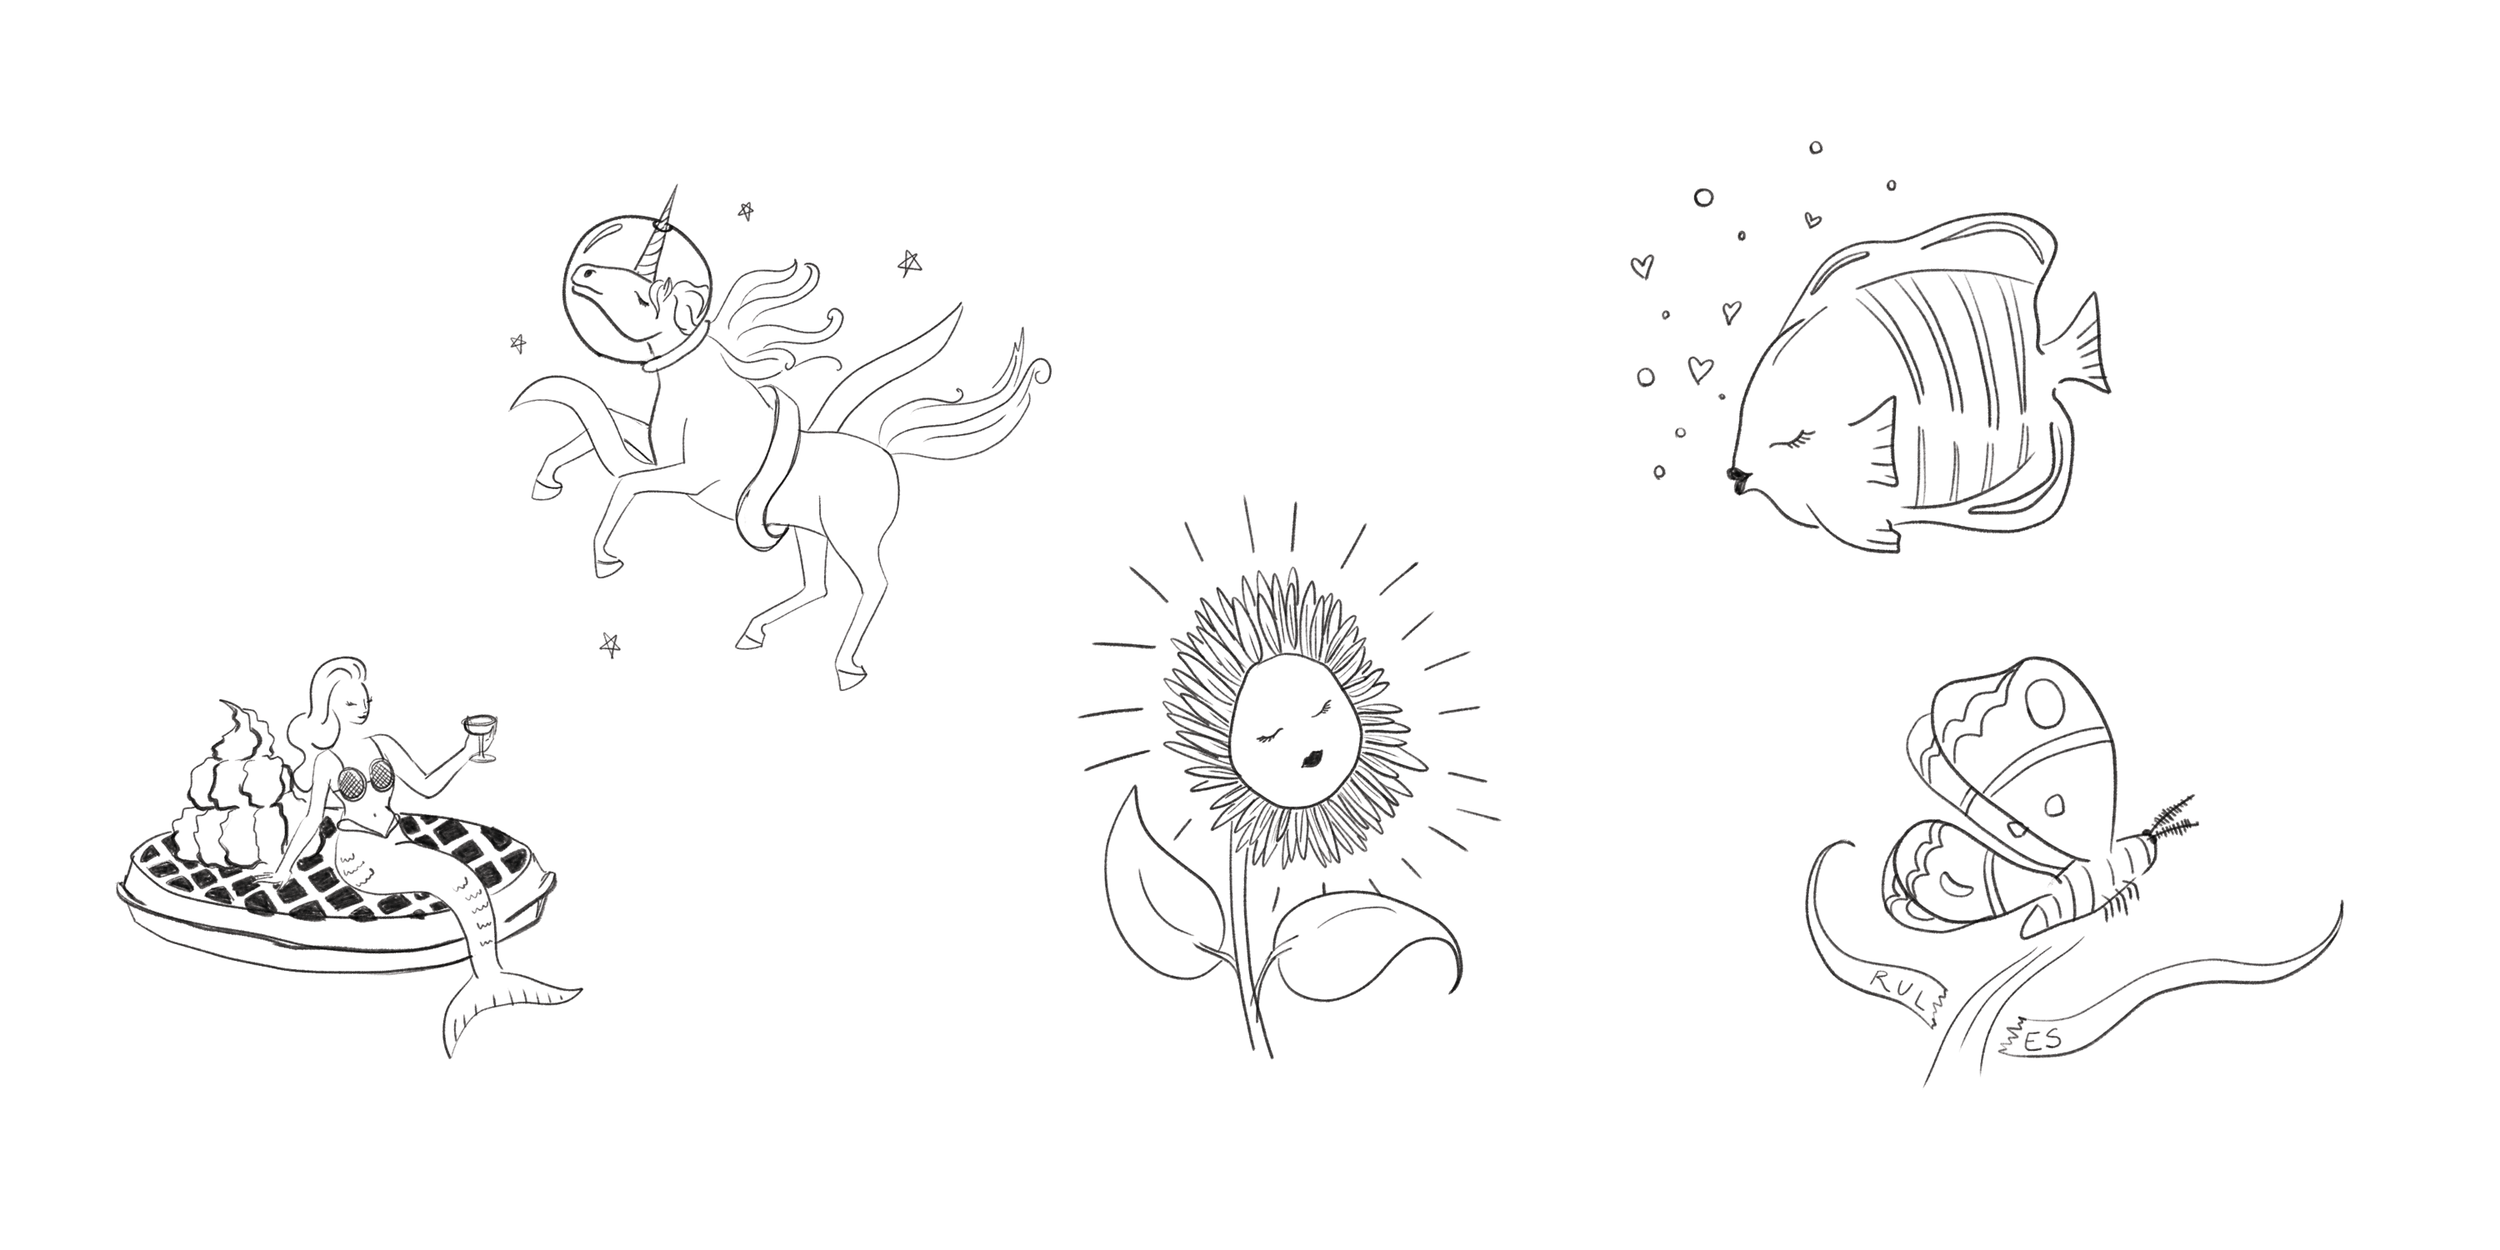 galentines-sketches.png